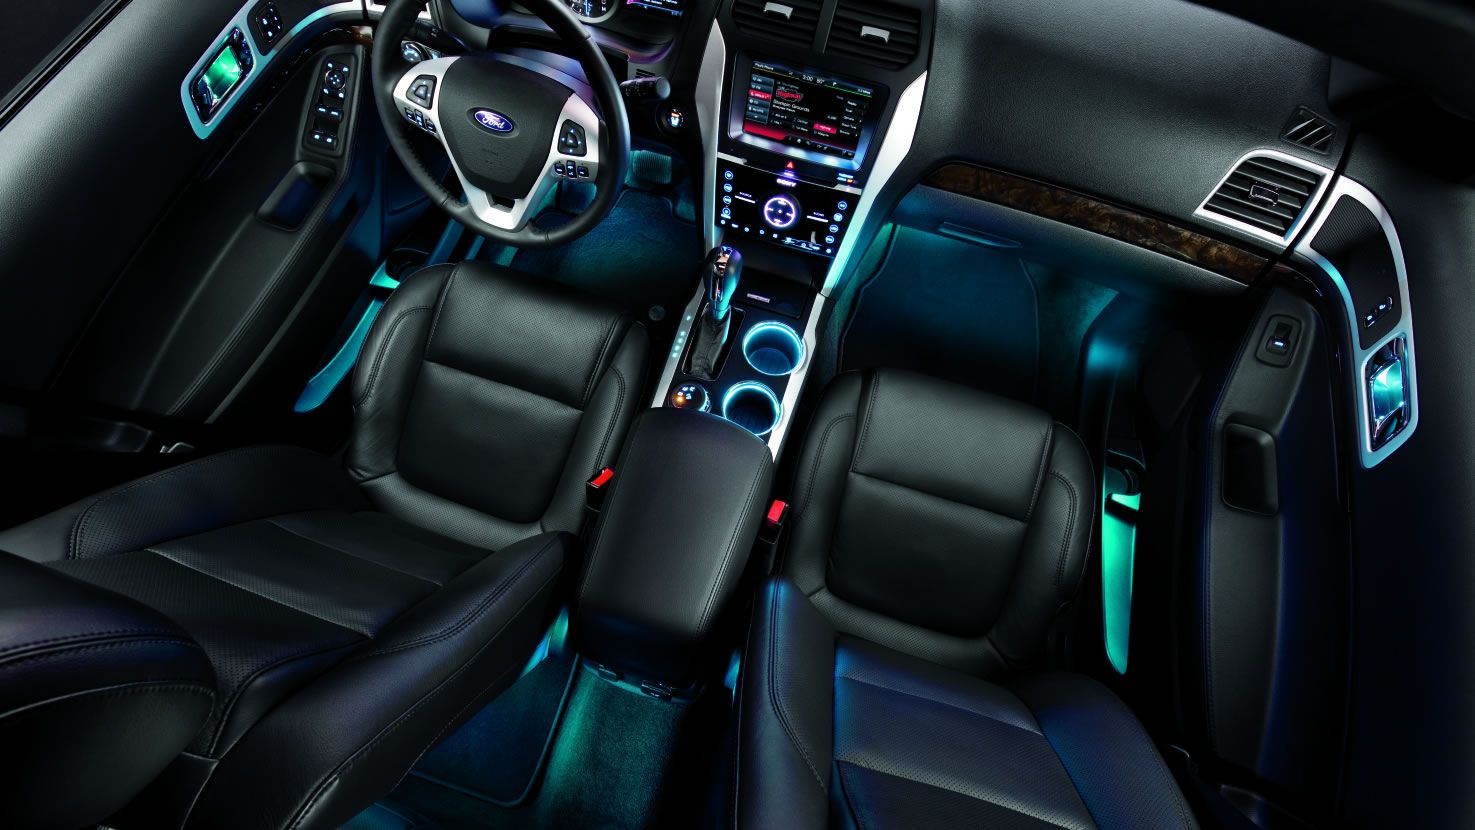 Export ford explorer 2015 interior details things to - 2013 ford explorer interior parts ...